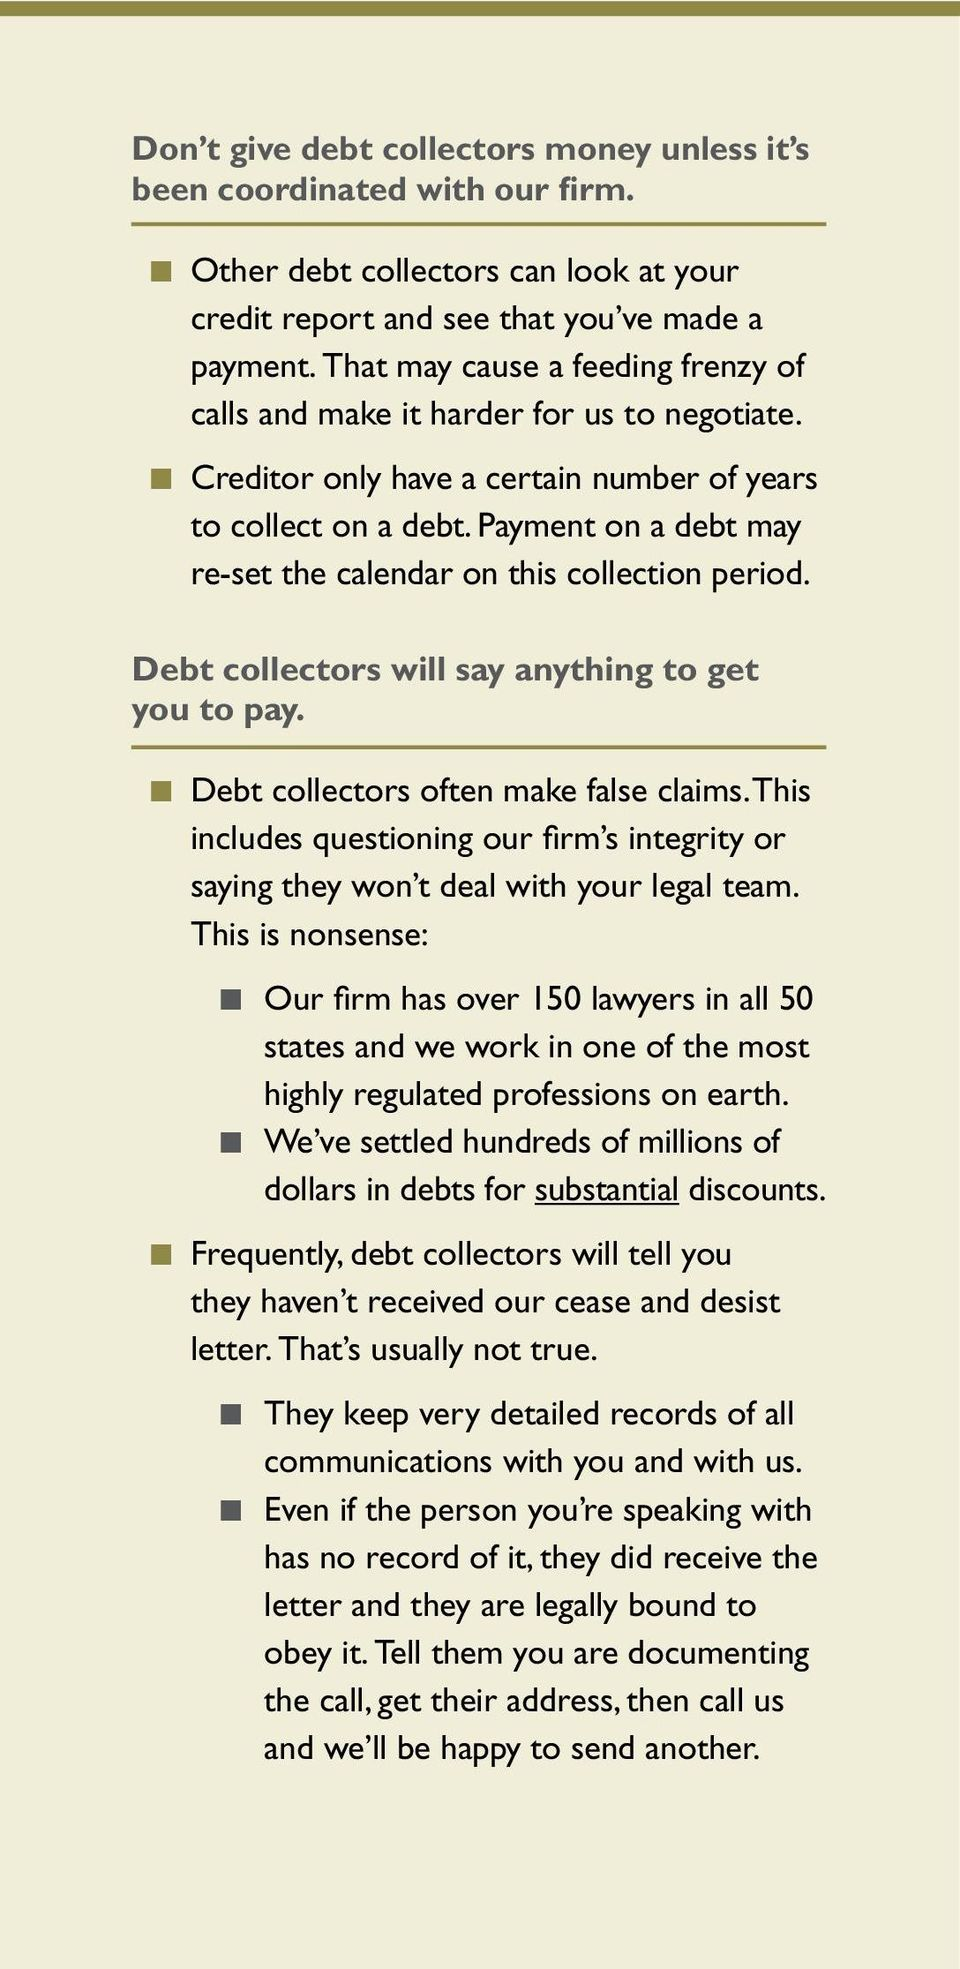 Paymet o a debt may re-set the caledar o this collectio period. Debt collectors will say aythig to get you to pay. Debt collectors ofte make false claims.